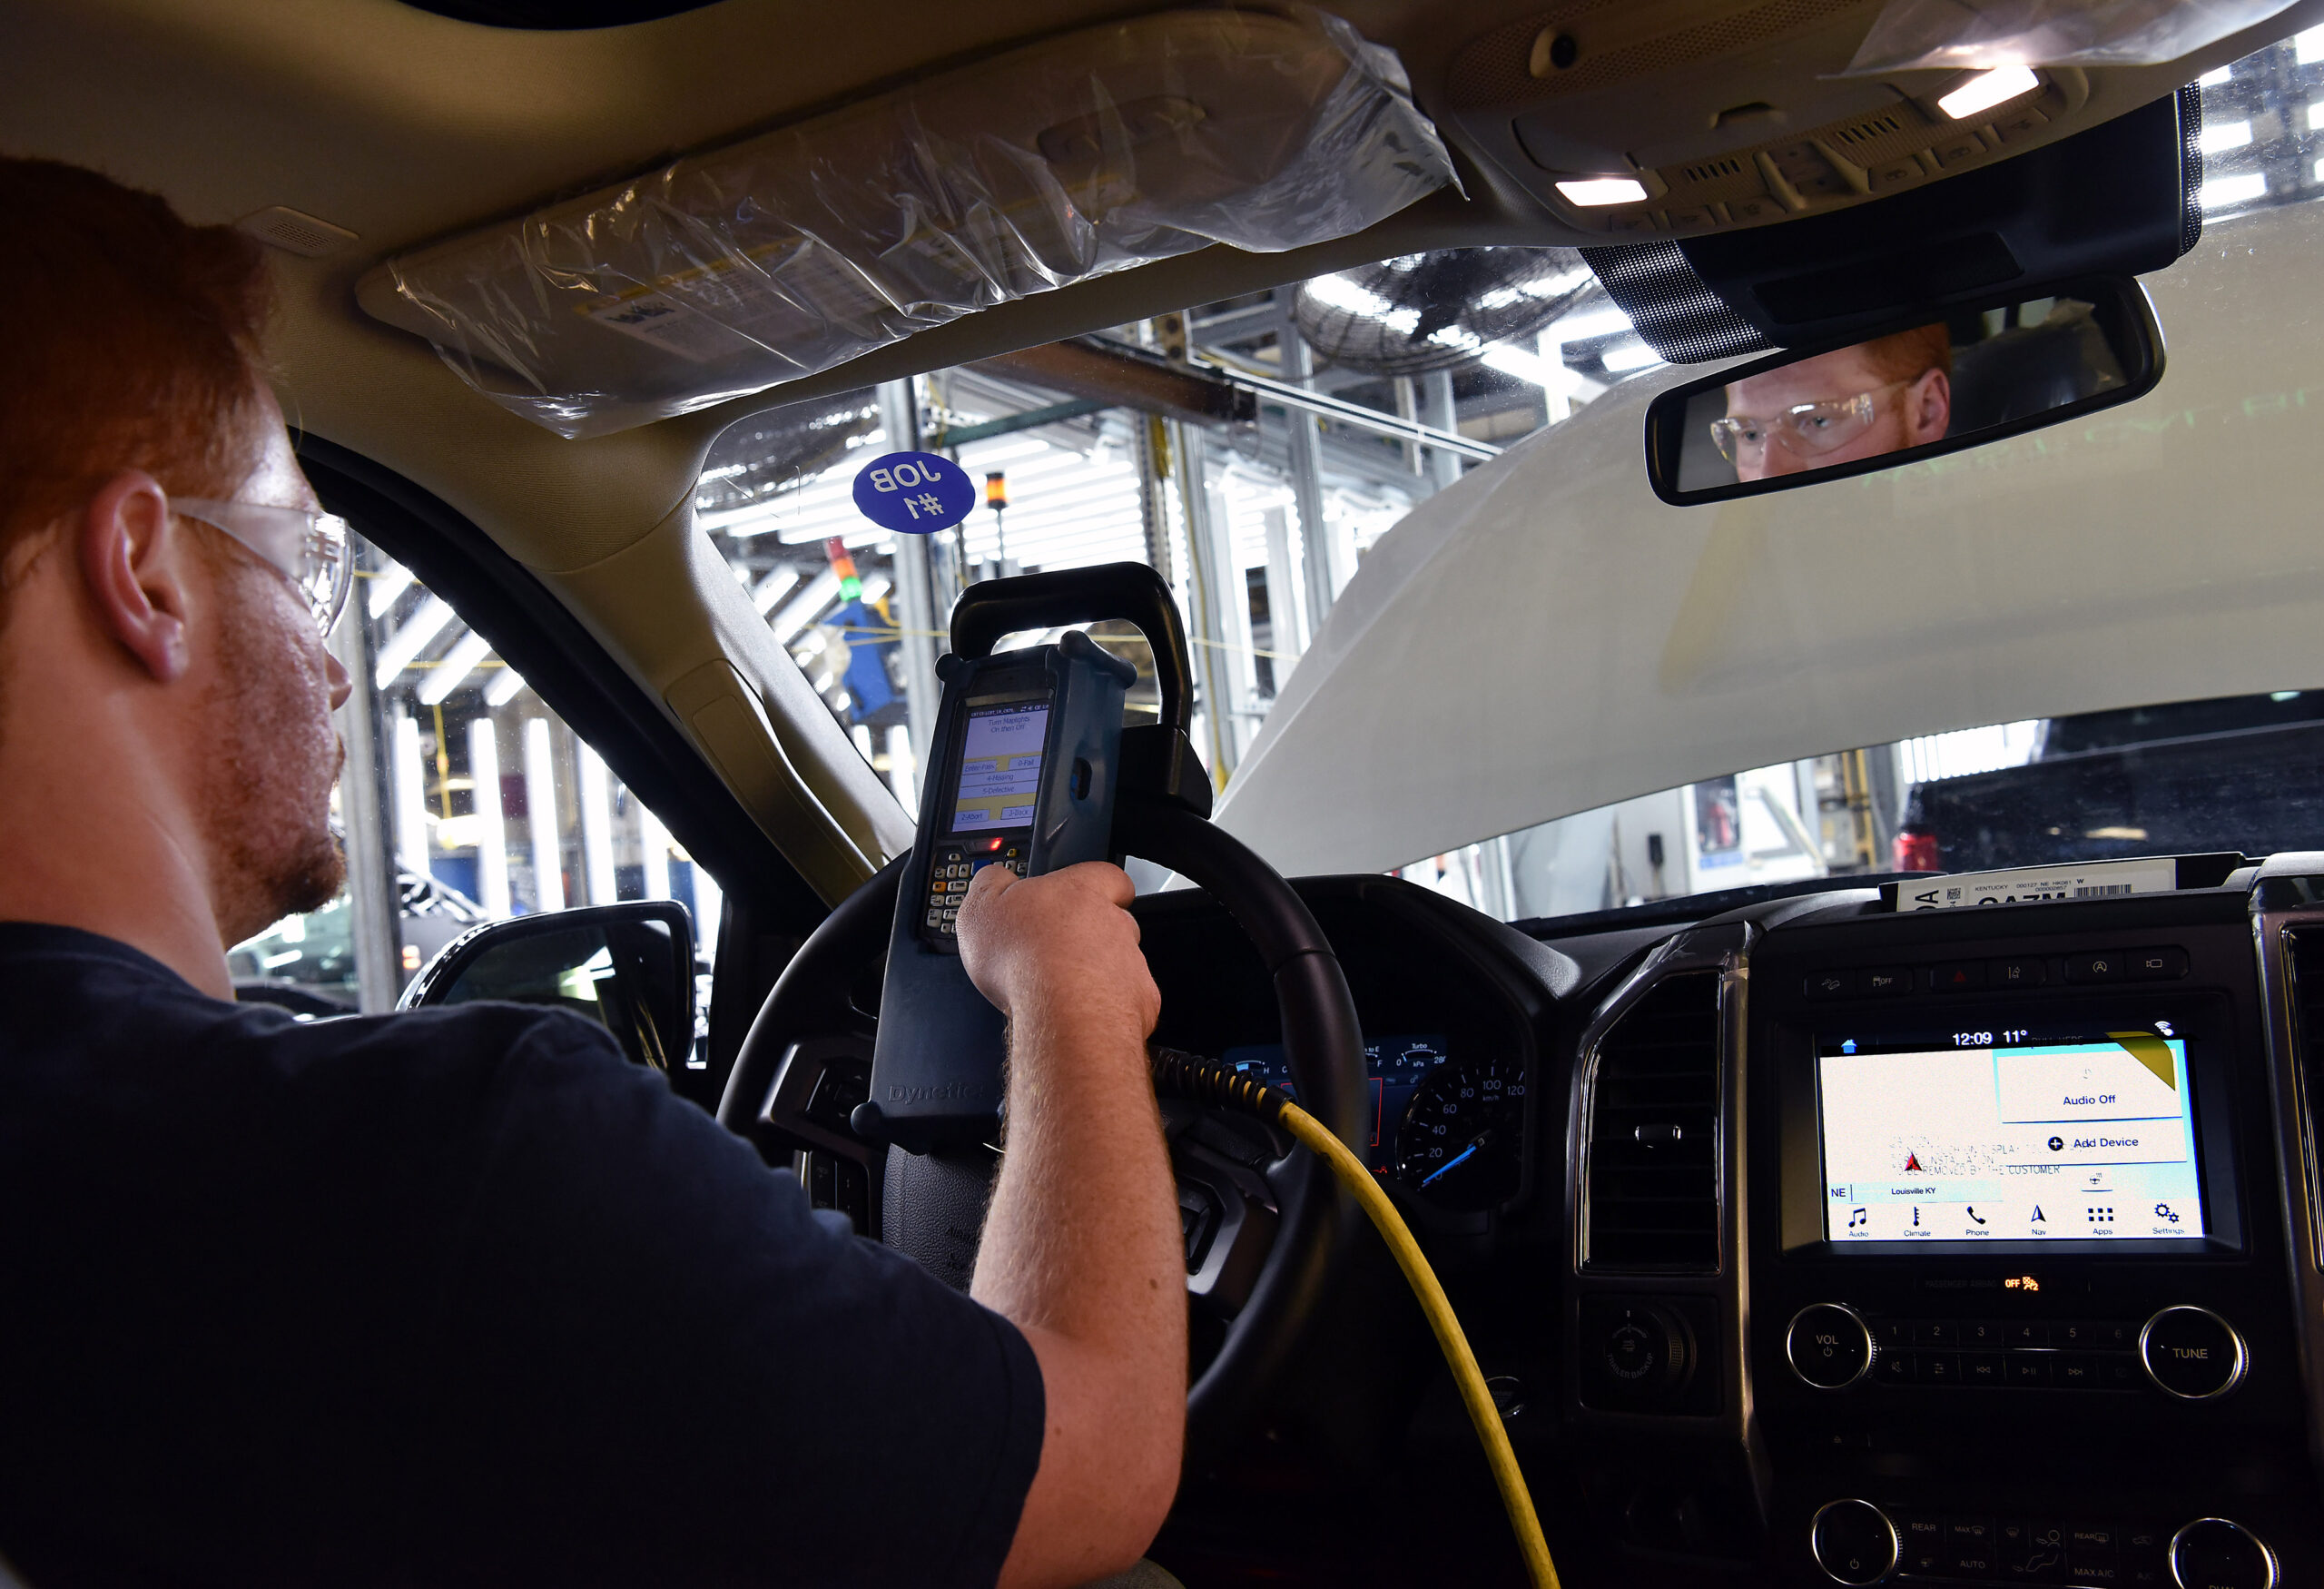 LOUISVILLE, KY., October 27, 2017 -- Ford team member, Cody Clemons doing a CBT-current base test. Ford's Kentucky Truck Plant today celebrates the launch of the all-new Expedition — the smartest, most capable and most adaptable Expedition ever — delivering generous space, more comfort and flexibility, and smart technology to keep everyone connected. Ford recently invested $900 million in the plant for upgrades to build the all-new Expedition and Lincoln Navigator, securing 1,000 full-time hourly U.S. jobs. The new Expedition arrives in dealership this fall.  Kentucky Truck Plant, which opened in 1969 and currently employs approximately 8,000 workers, produces the all-new Ford Expedition, Lincoln Navigator and F-250, F-350, F-450 and F-550 Super Duty pickups and chassis cabs. The plant has built more than 470,000 Expeditions since it was introduced to the plant's line in 2009. Photo by:  Sam VarnHagen